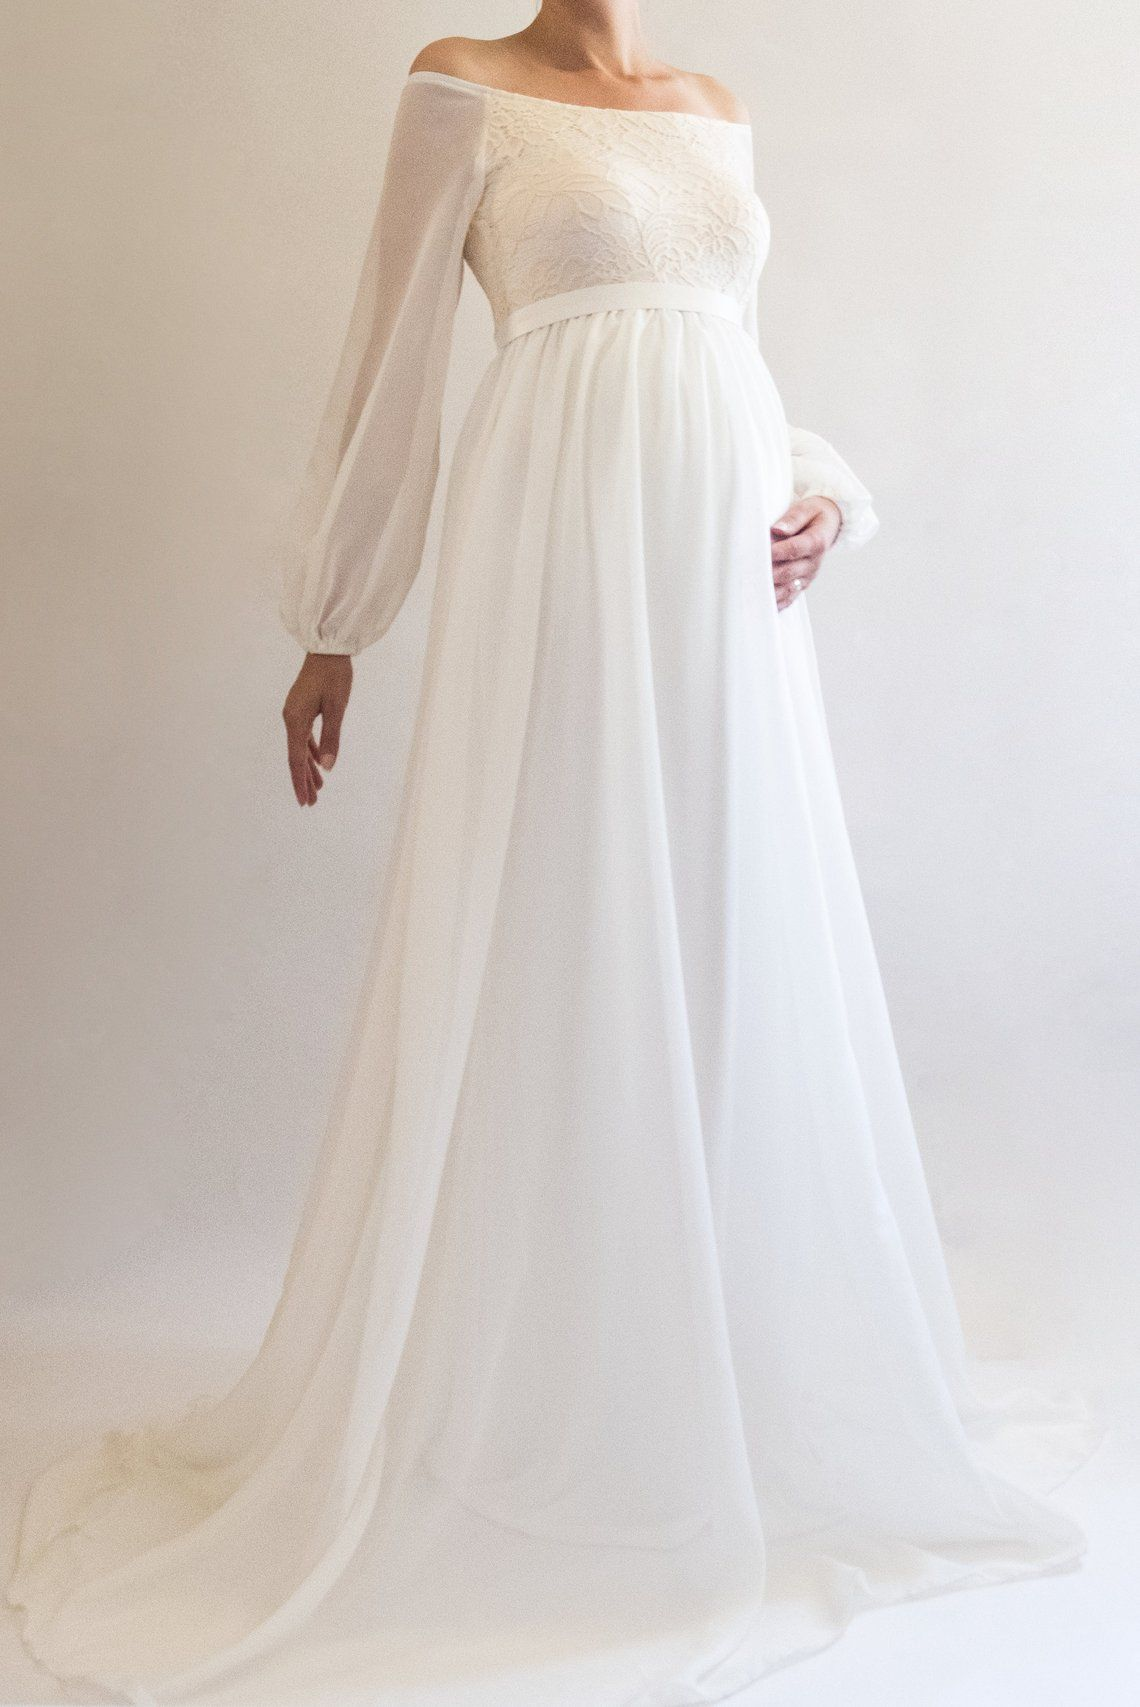 Annabelle boho wedding dress maternity dress bridesmaid dress